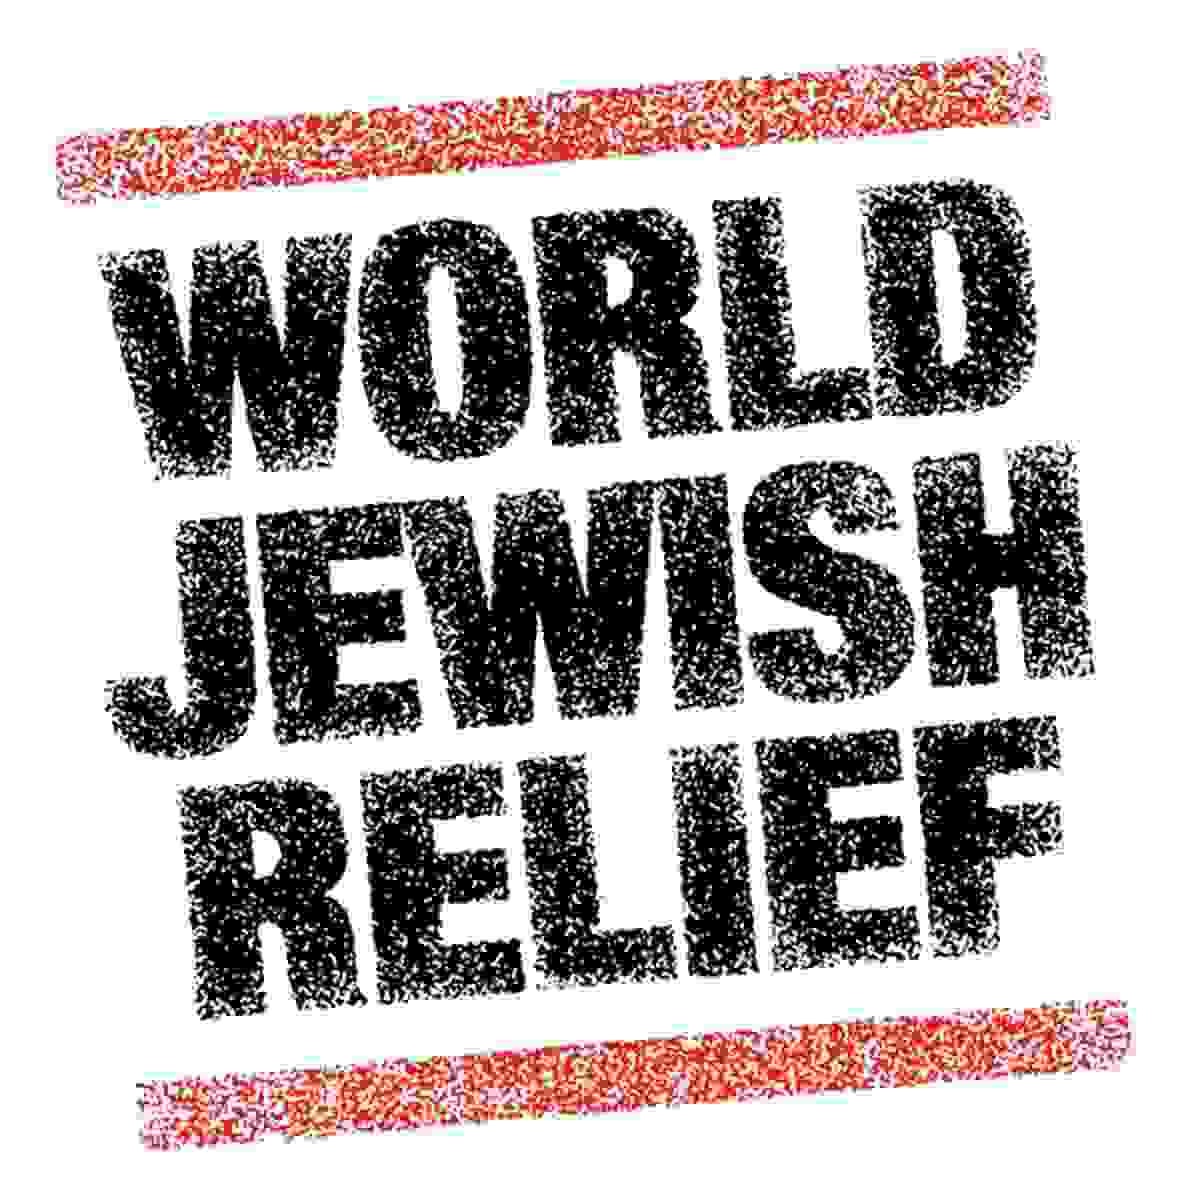 logo for International Council on Jewish Social and Welfare Services